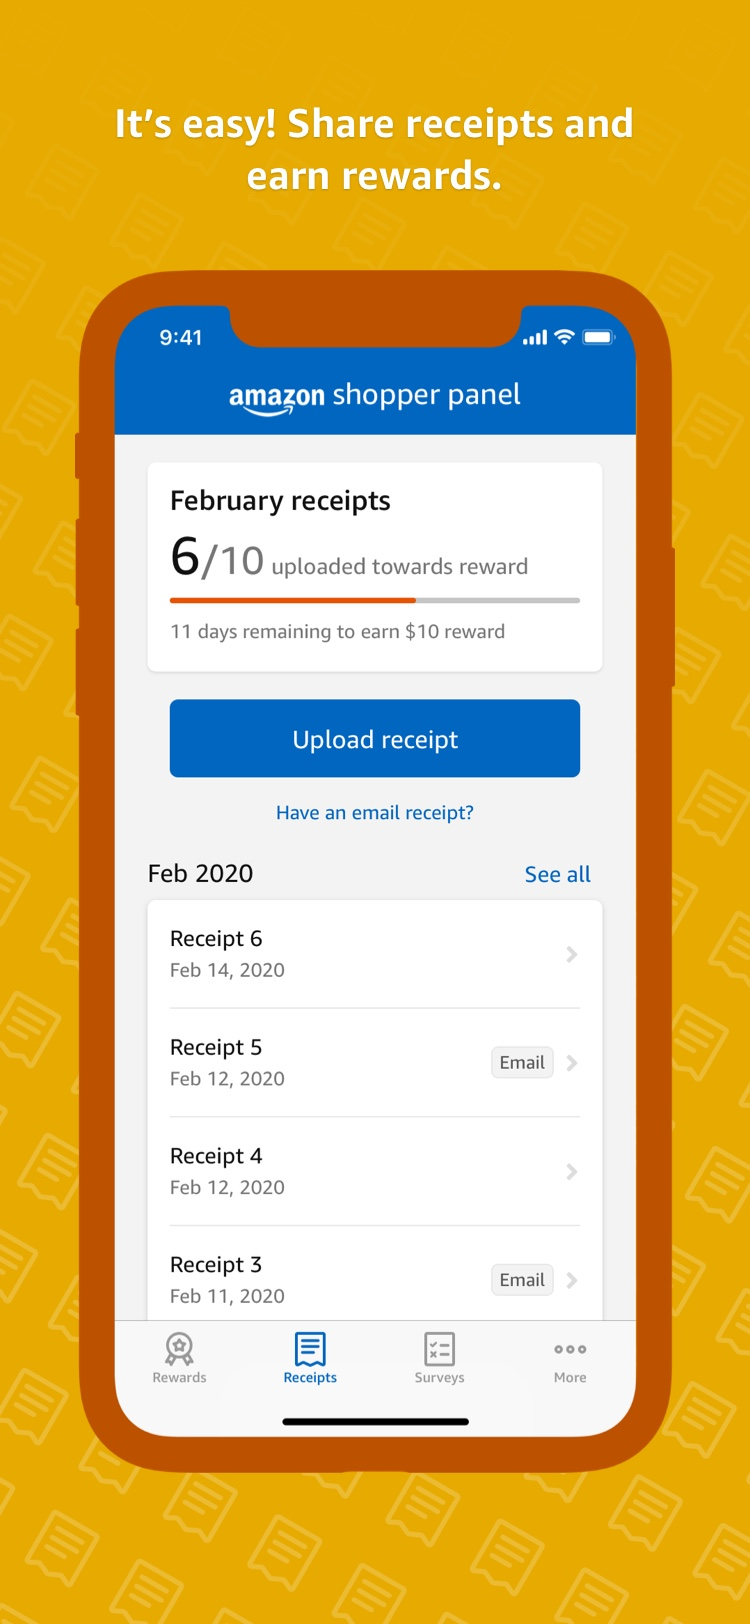 It's easy! Share receipts and earn rewards.